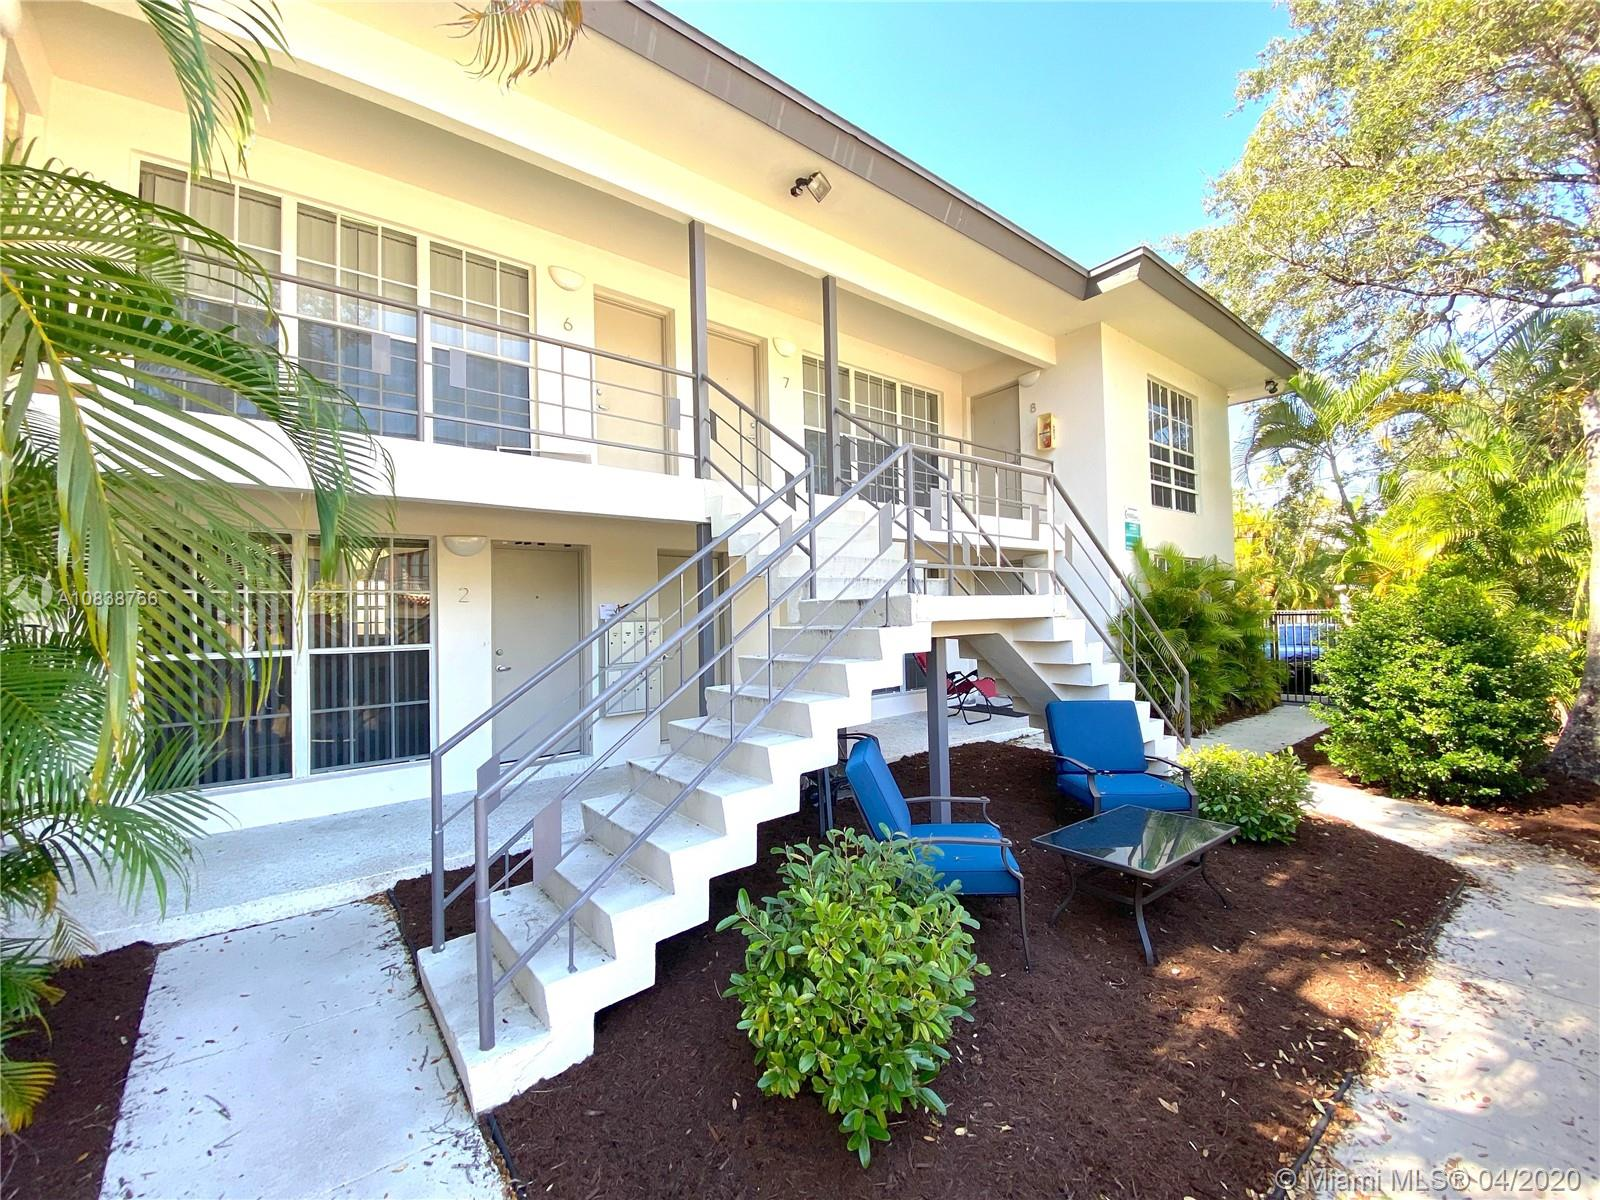 1007 SE 2nd Ct # 3, Fort Lauderdale, Florida 33301, ,1 BathroomBathrooms,Residential Lease,For Rent,1007 SE 2nd Ct # 3,A10838766